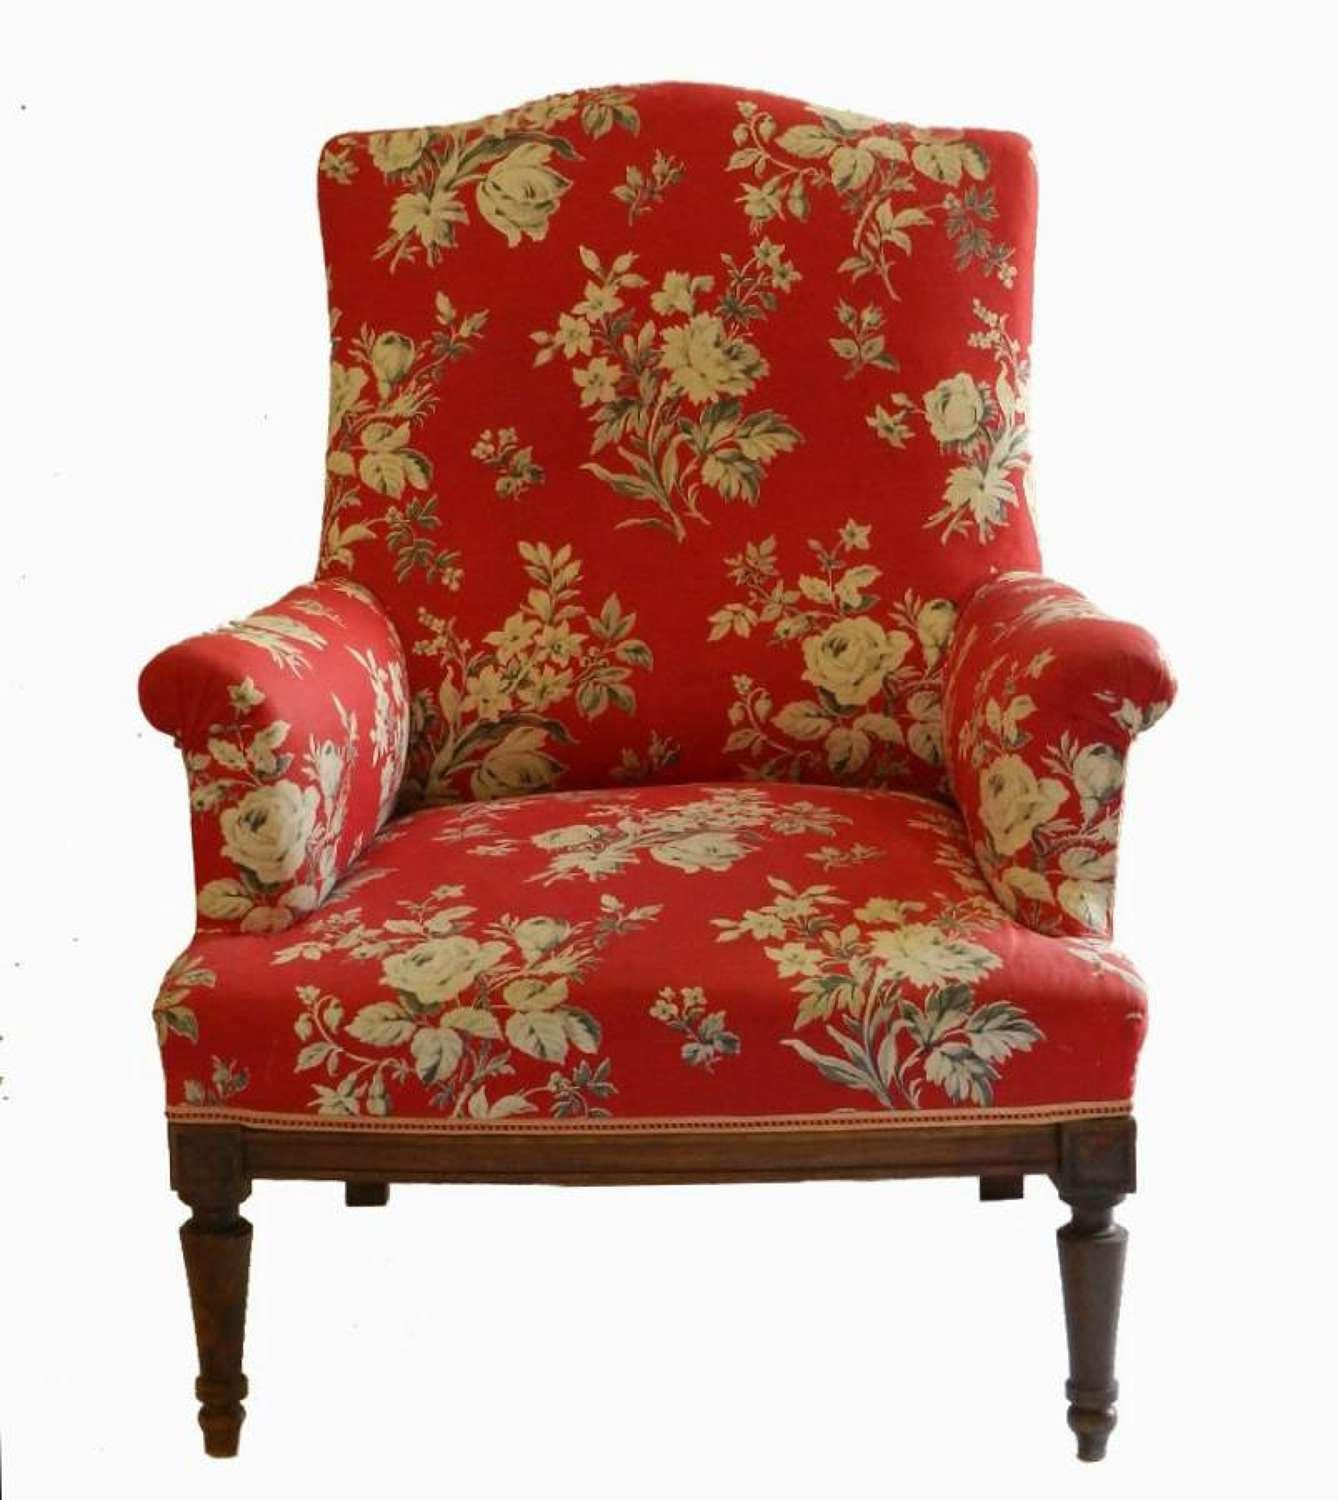 Original C19 French Armchair Fauteuil to recover (or use)